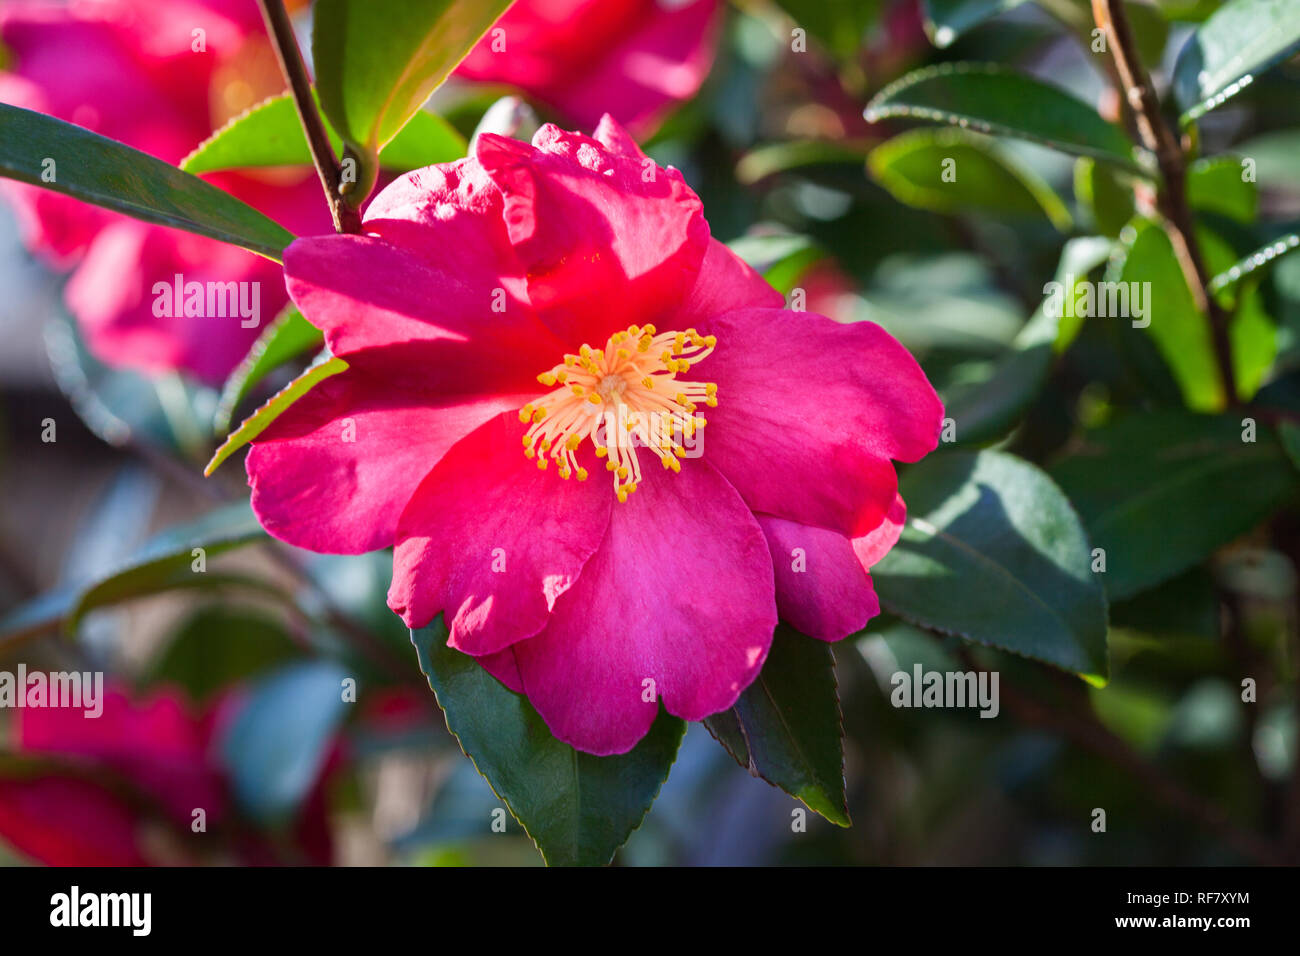 Fiori Gialli Con Pistilli Rossi.Flowering Camellia Plant With Vibrant Red Flowers Yellow Stamens